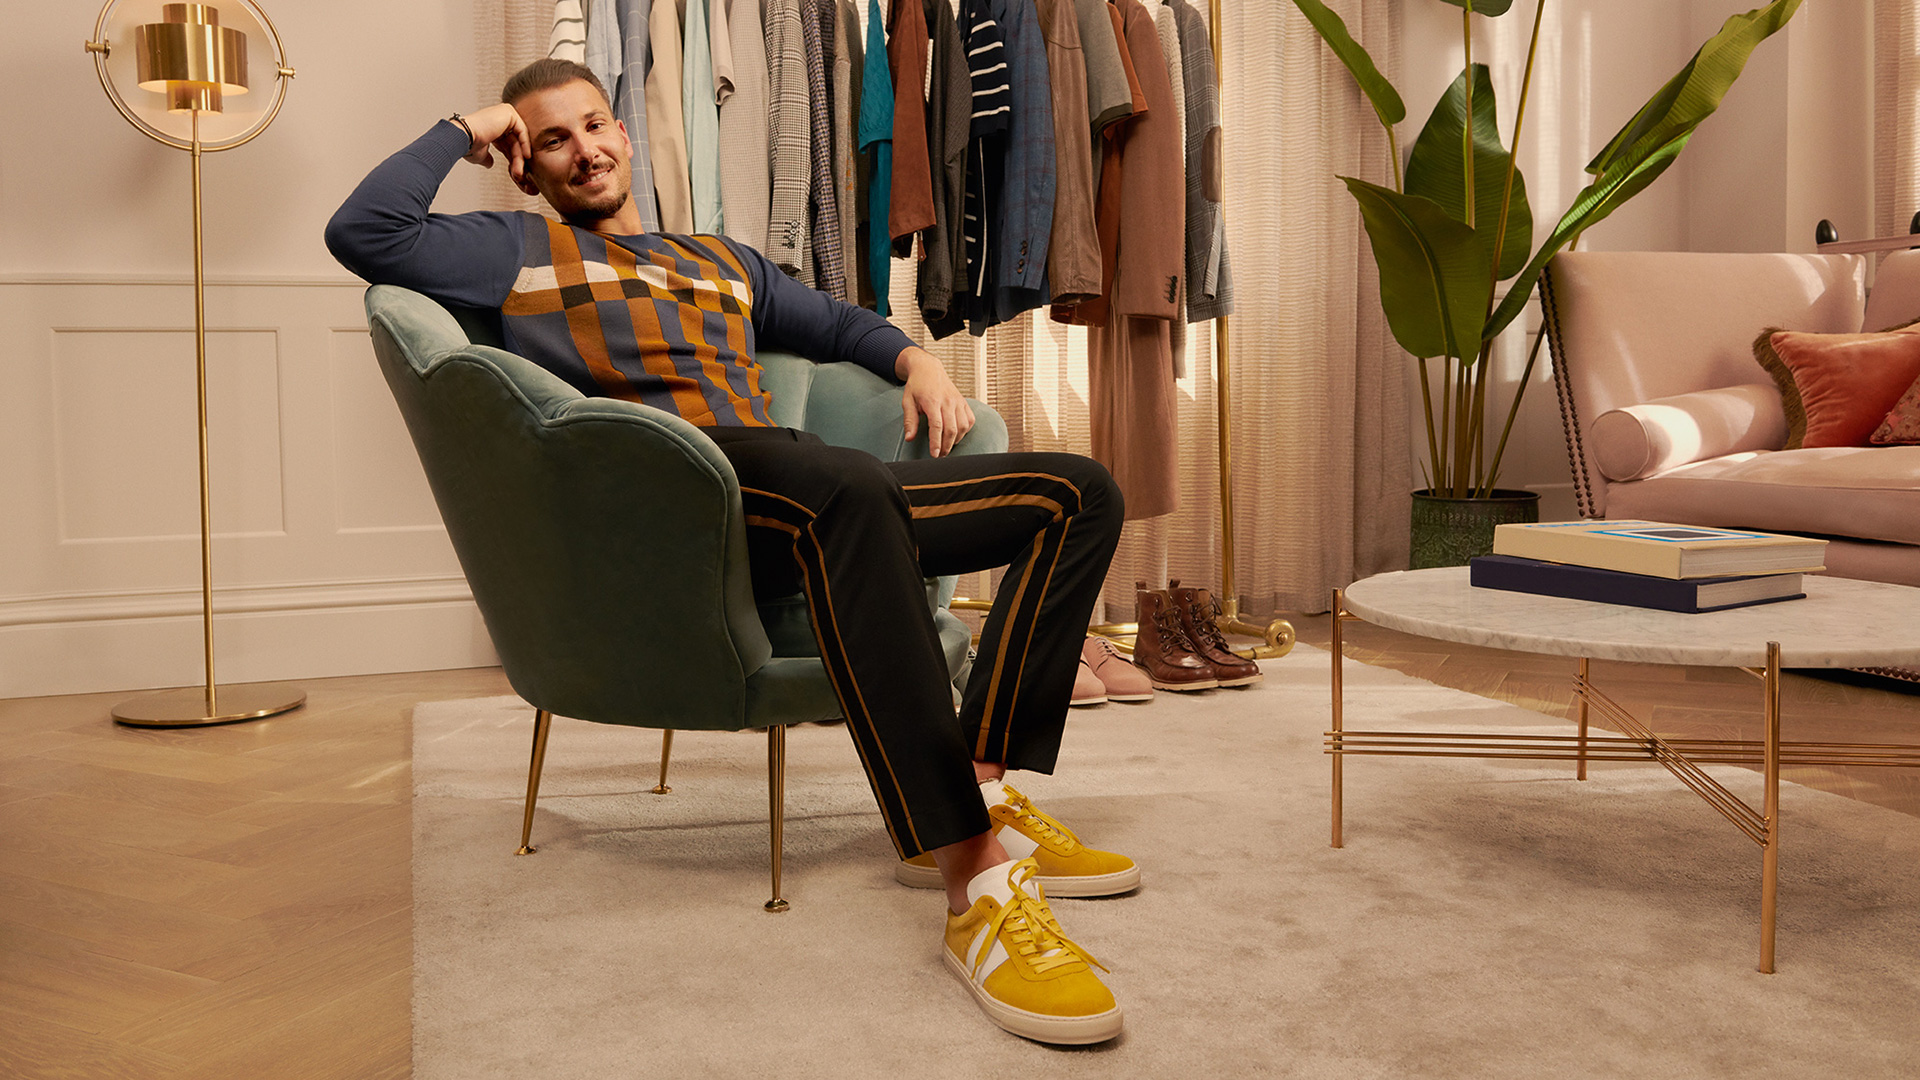 Sandro Rasa poses on the set of The Bicester Village Shopping Collection's autumn campaign shoot